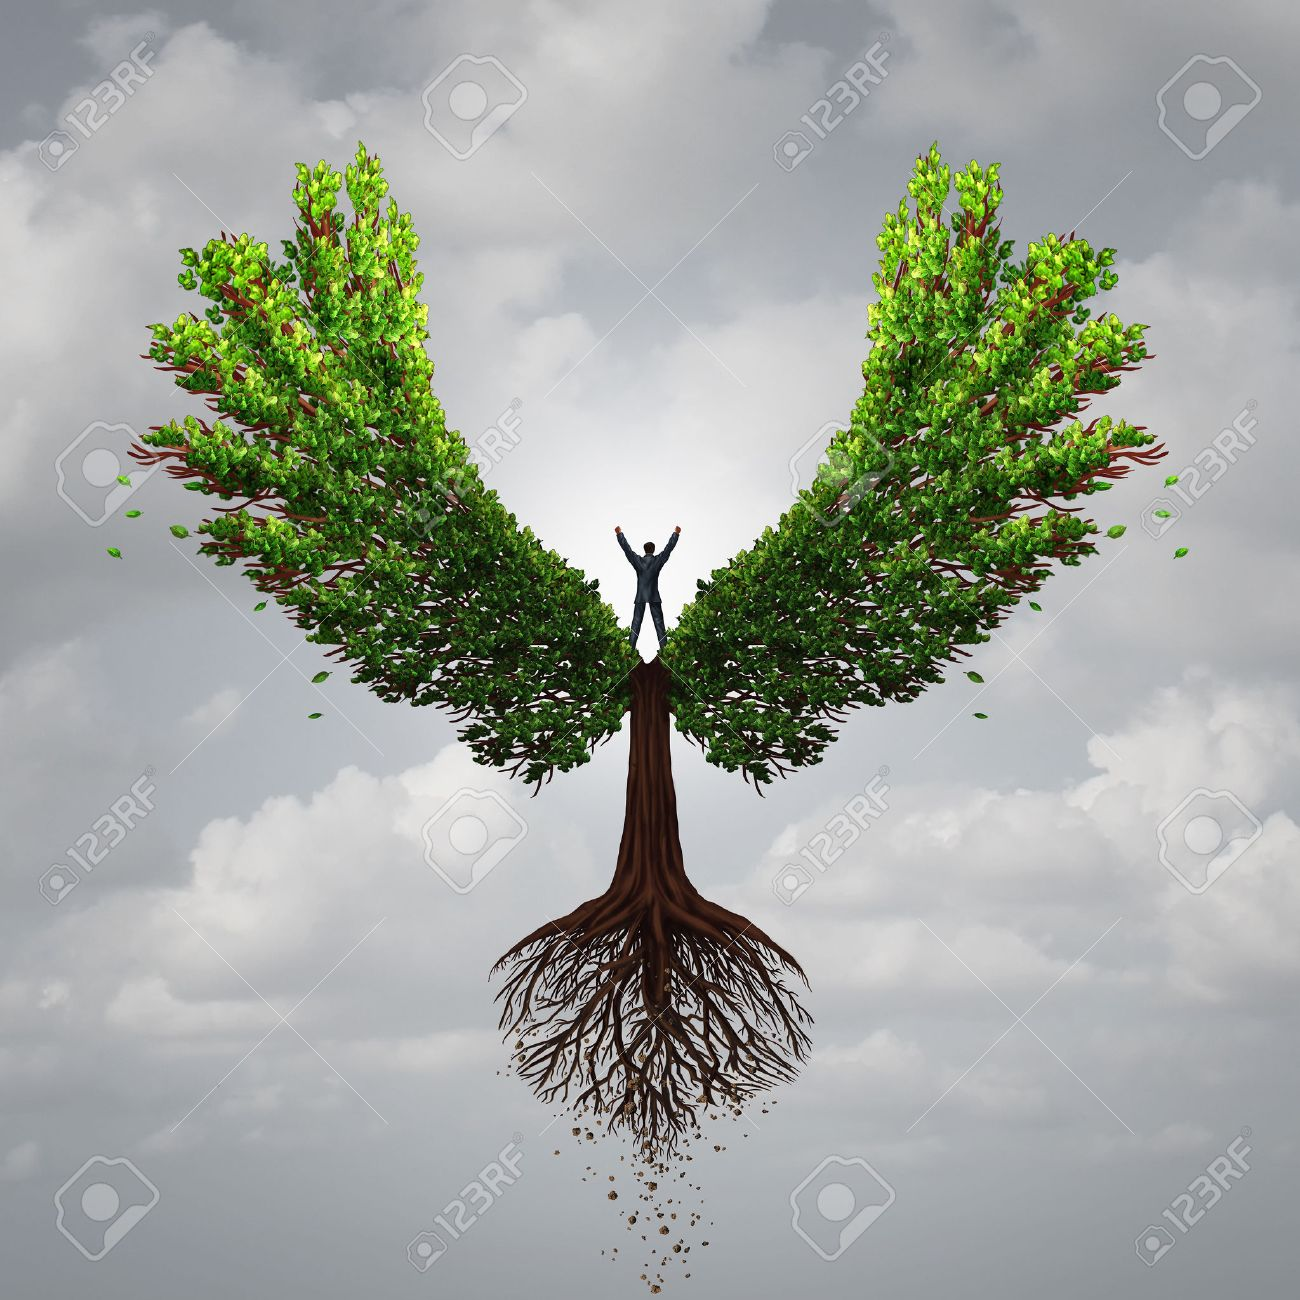 Control your life opportunity concept as a person taking charge and controlling a tree with wings flying towards a goal for success as a psychology symbol for positive thinking in a 3D illustration style. Standard-Bild - 57750225